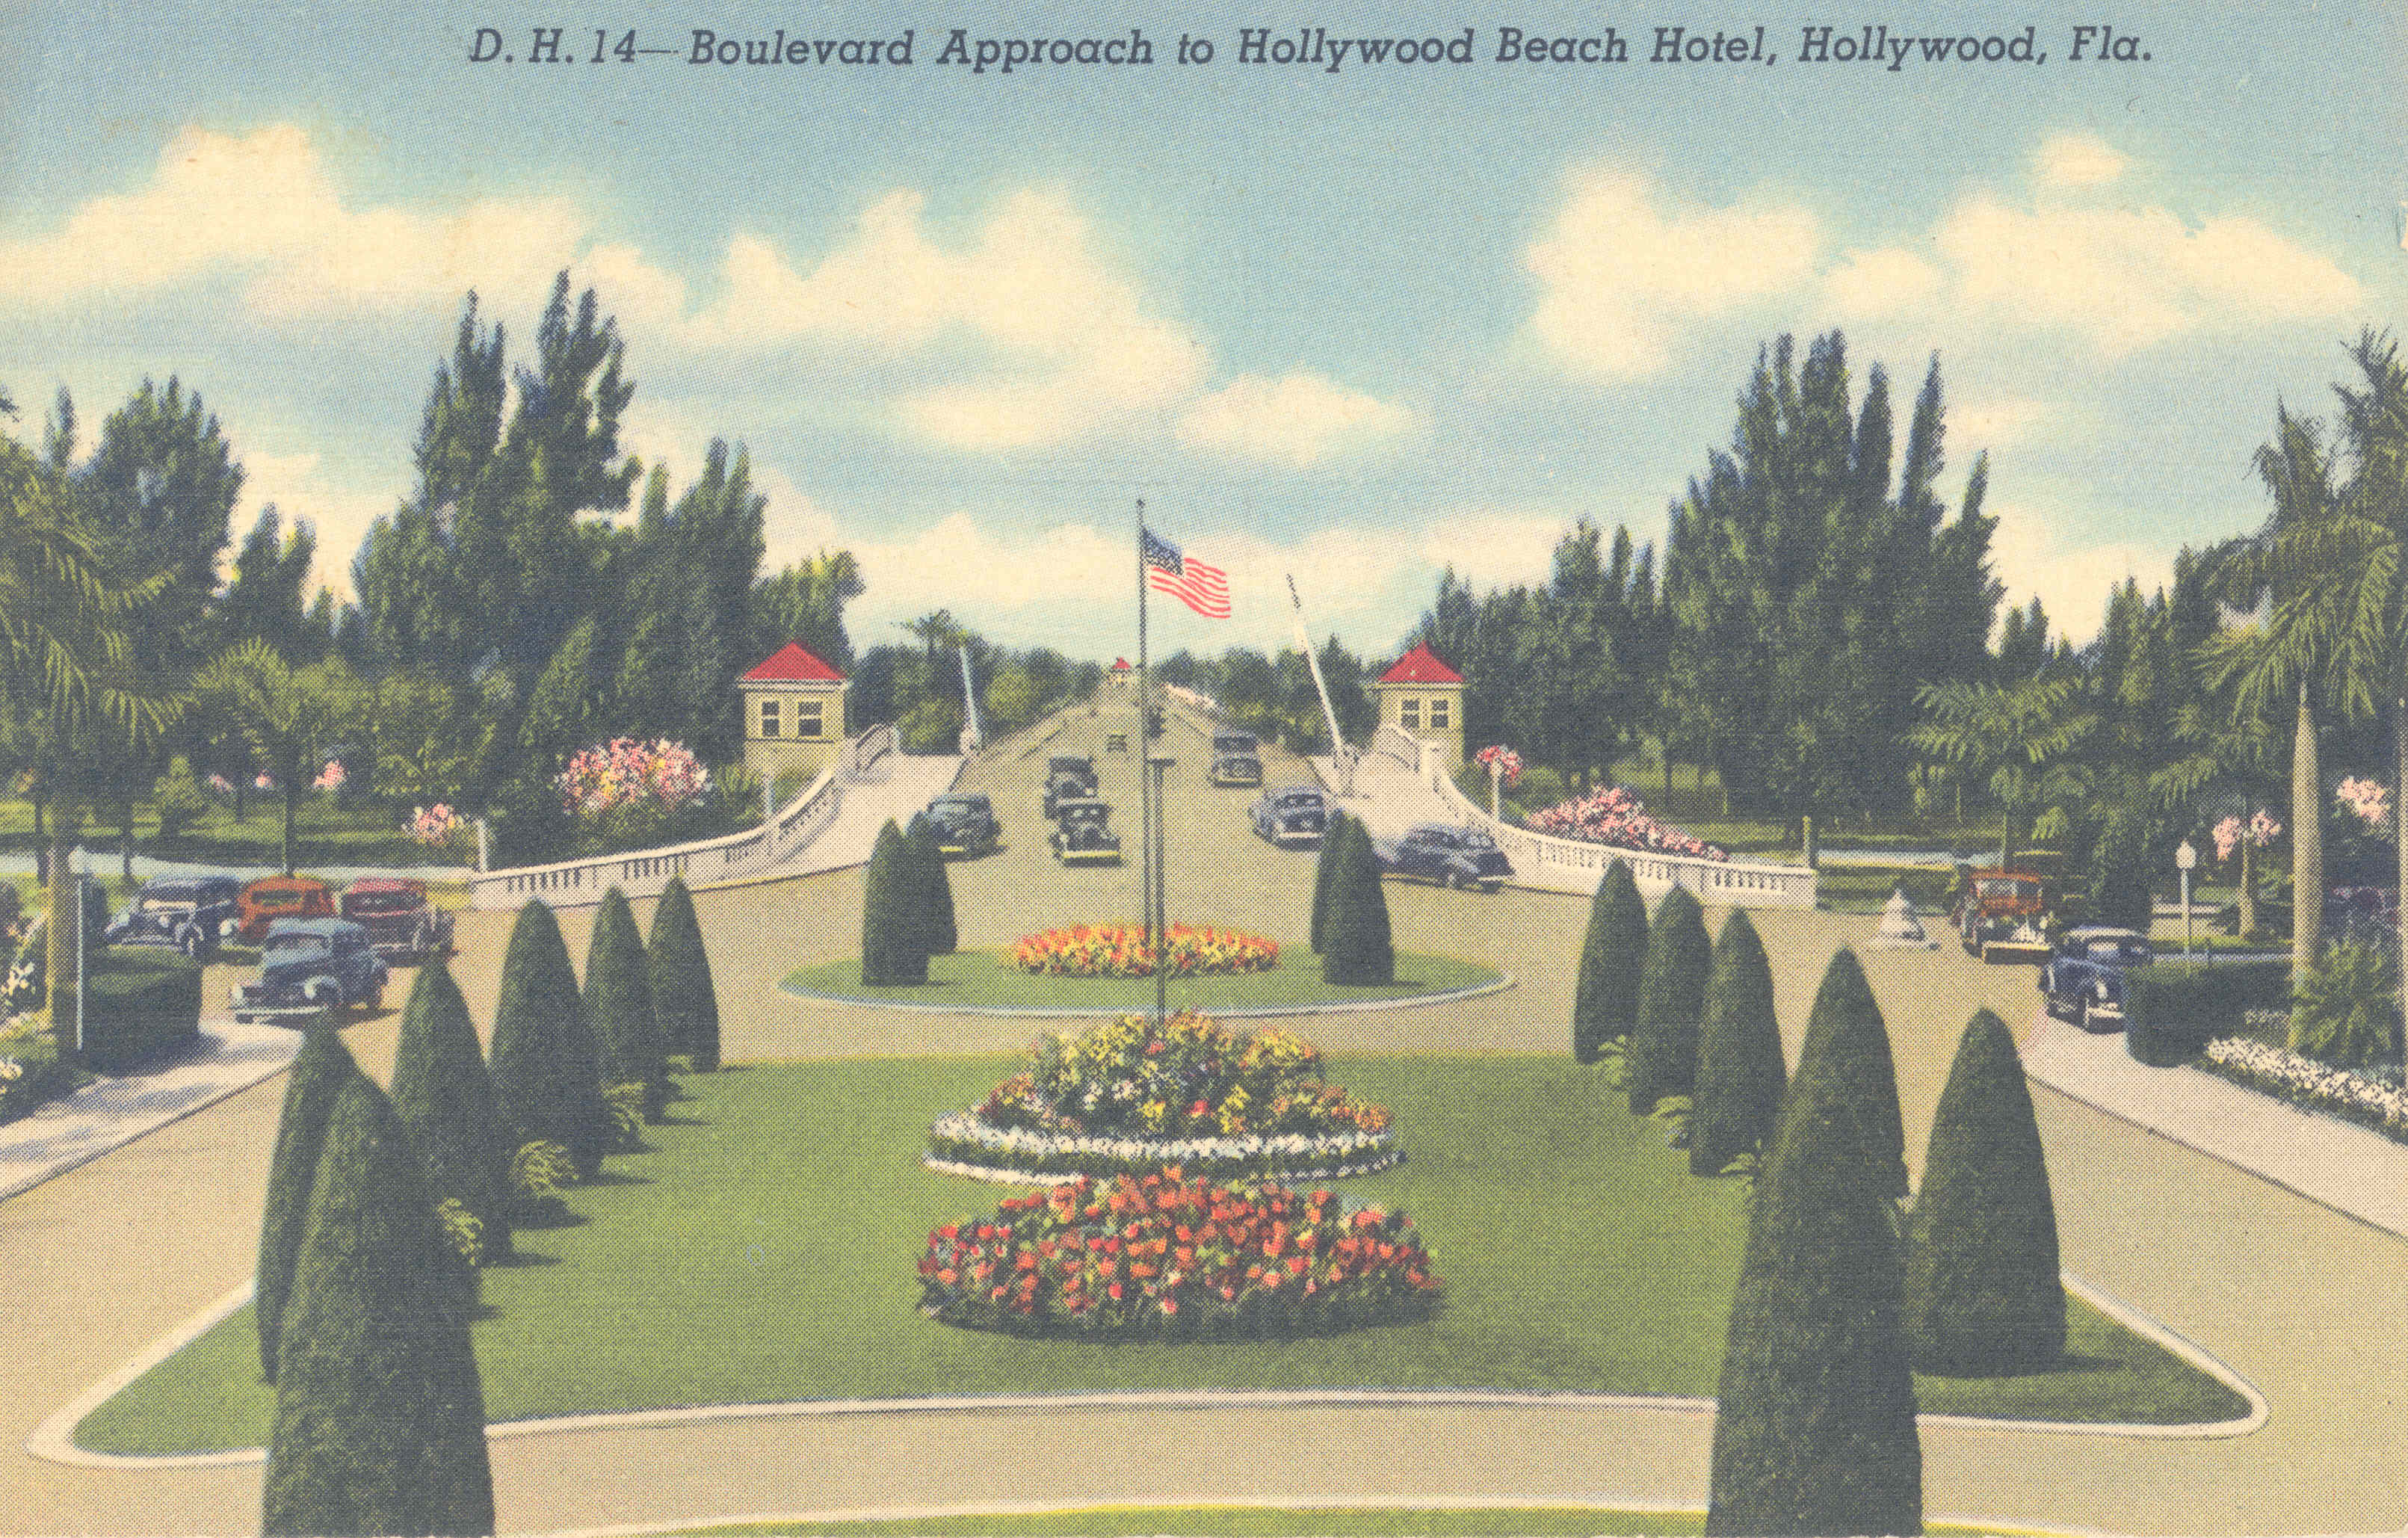 Boulevard Approach to Hollywood Beach Hotel